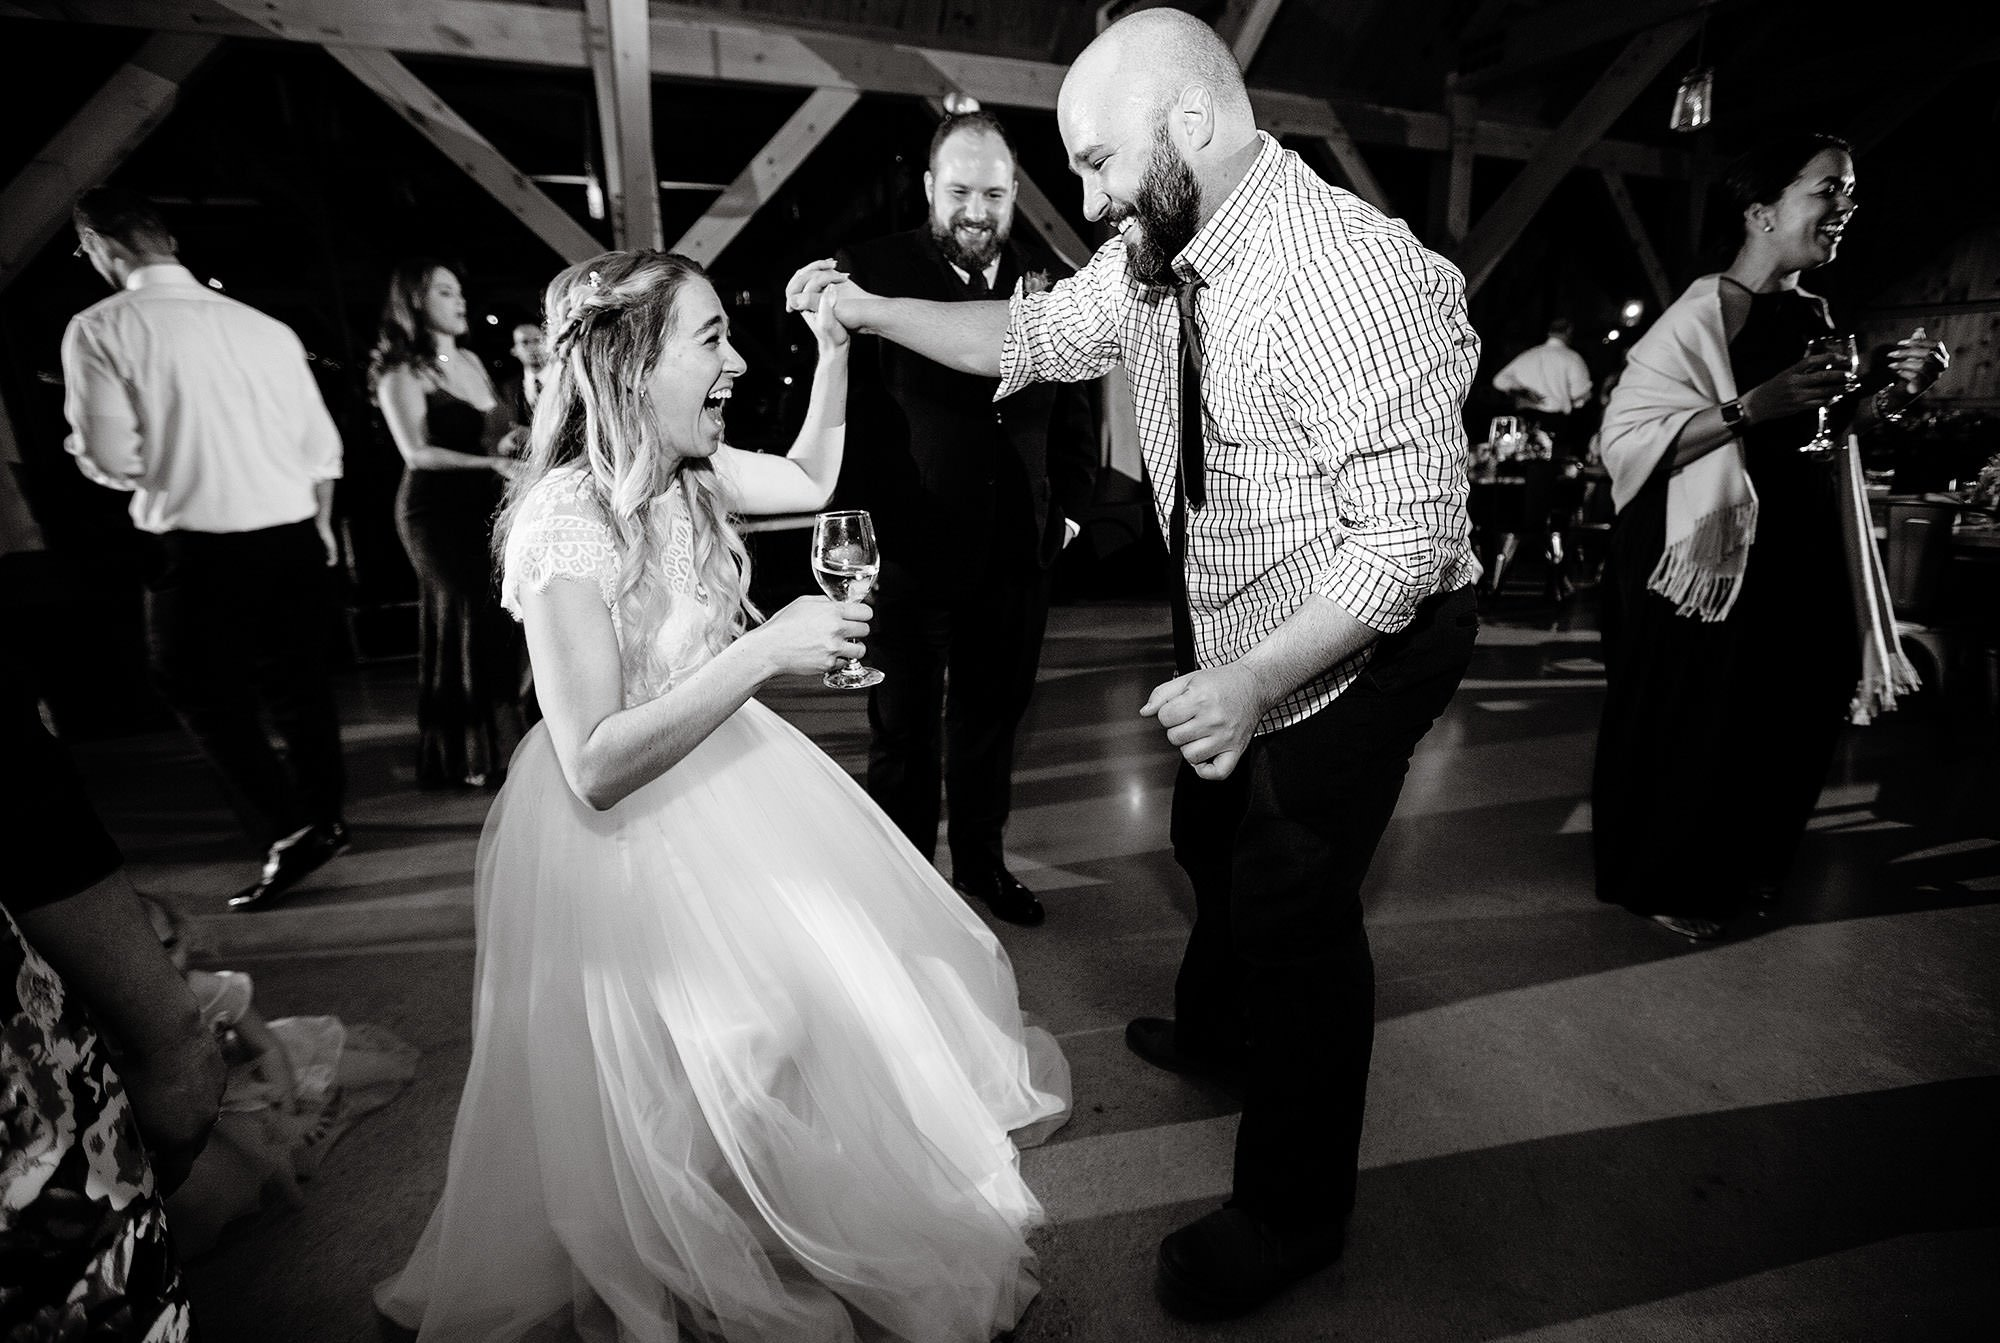 The bride dances with her guests during her Mad River Barn wedding.